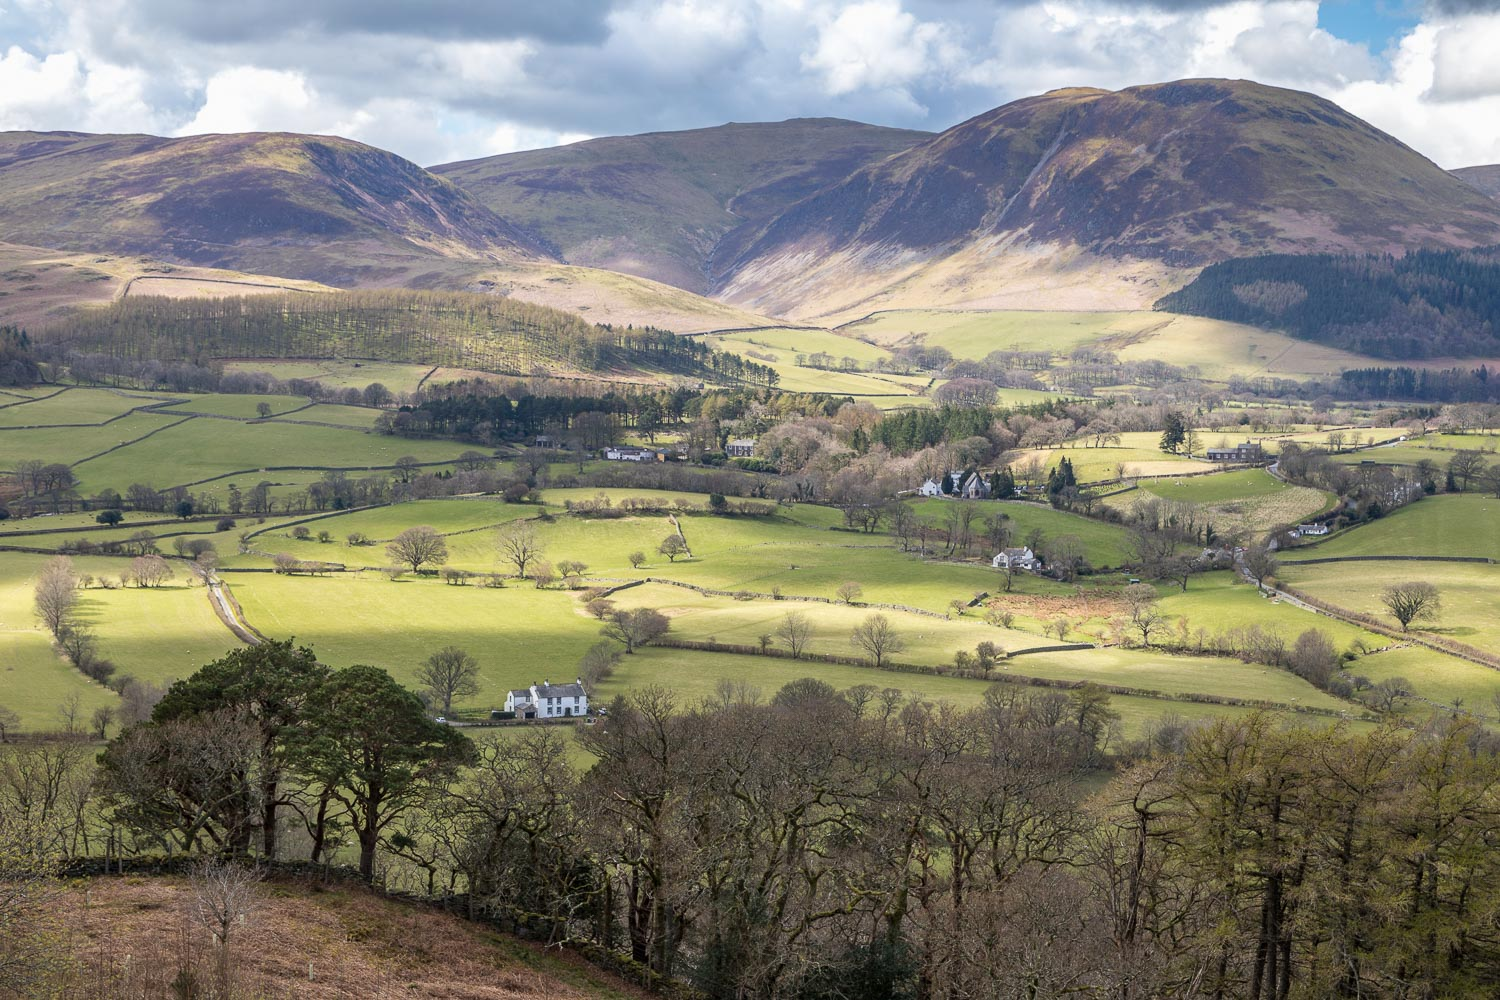 Carling Knott, Loweswater